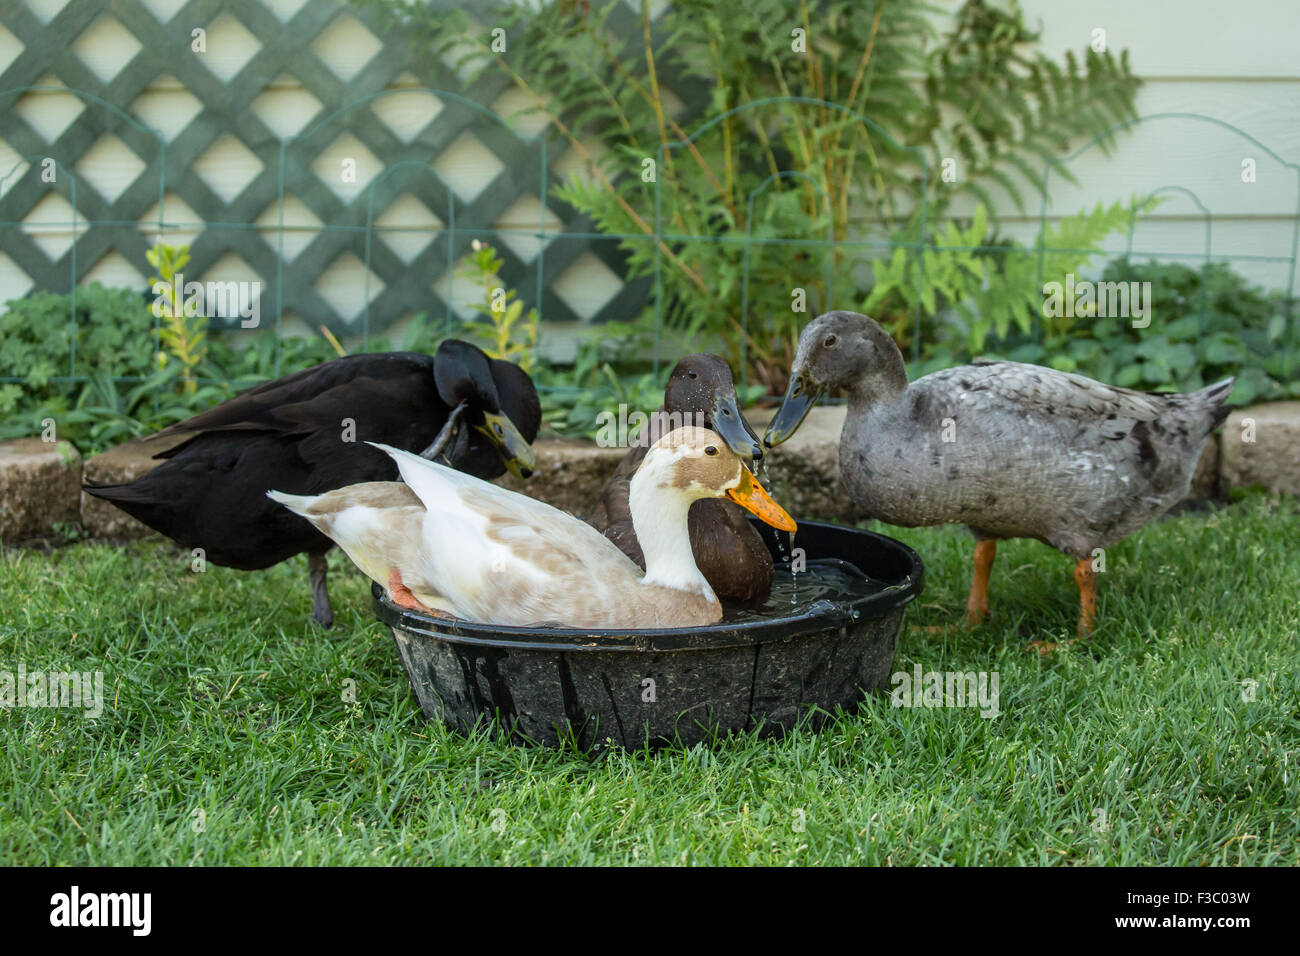 Four types of Indian Runner ducks (Anas platyrhynchos domesticus): White and Fawn, black, chocolate and blue. - Stock Image